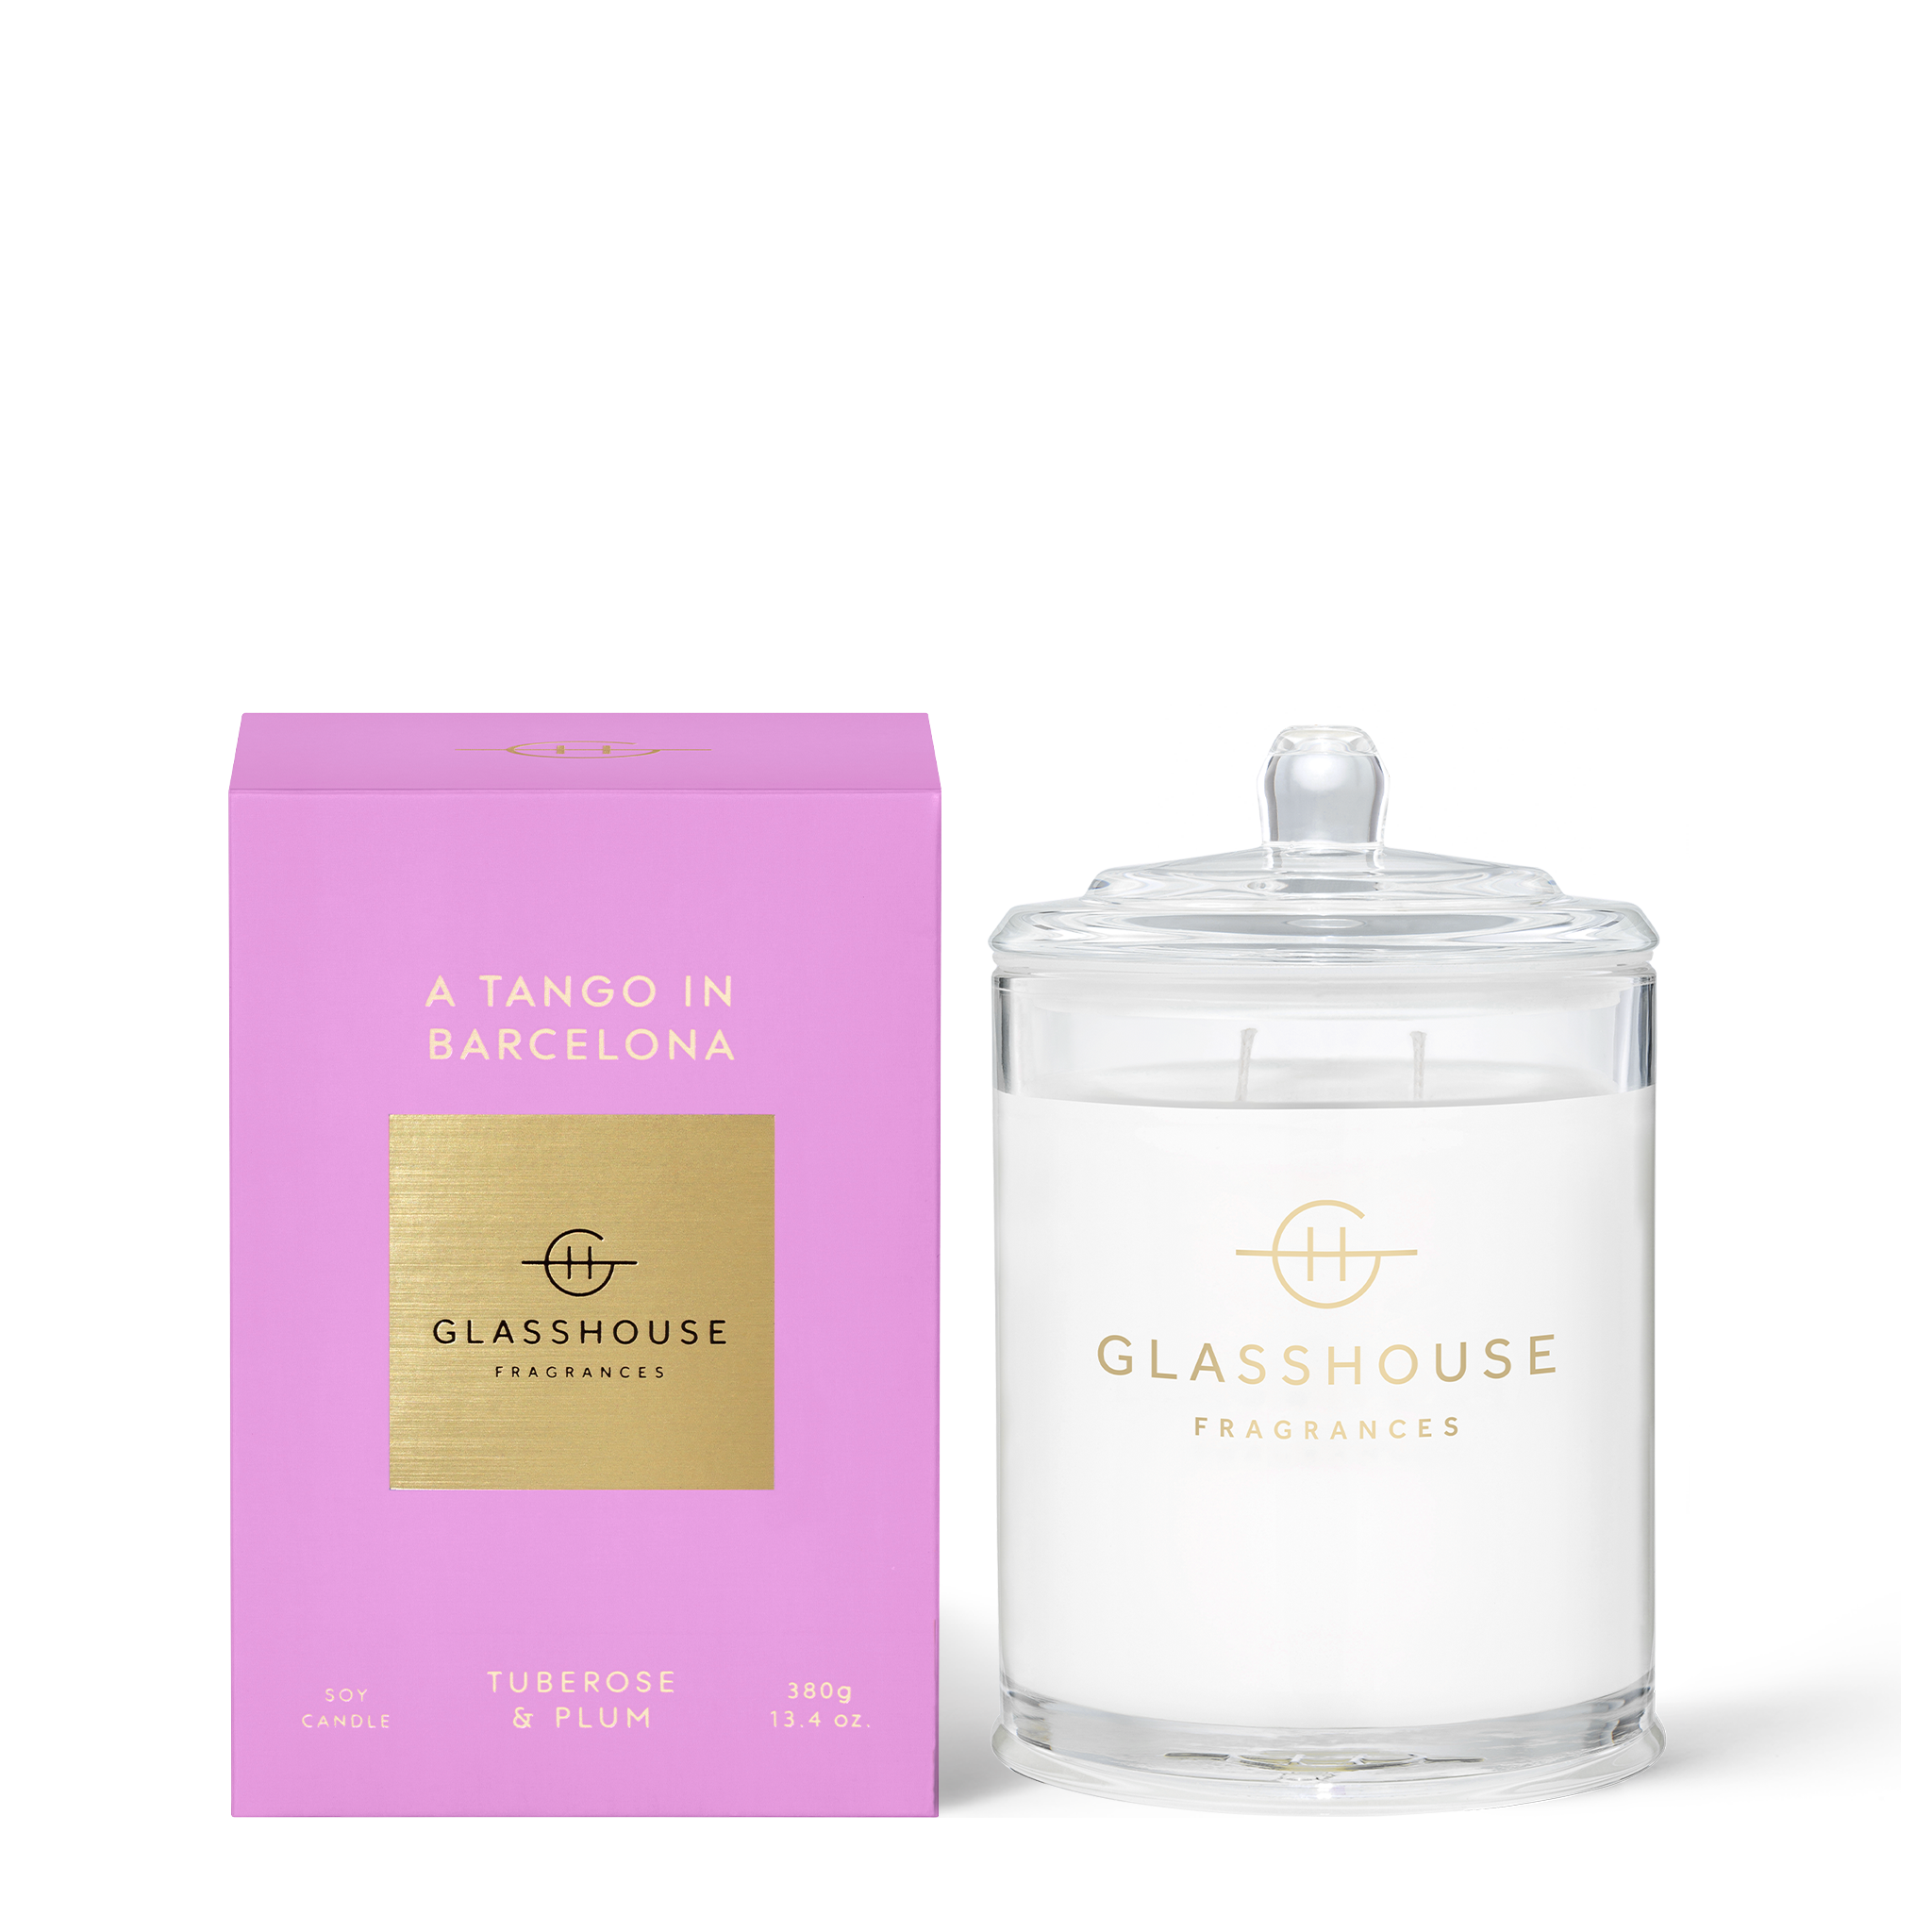 Glasshouse-Fragrances-a-tango-in-barcelona-tuberose-plum-Candle-380g_2048x2048